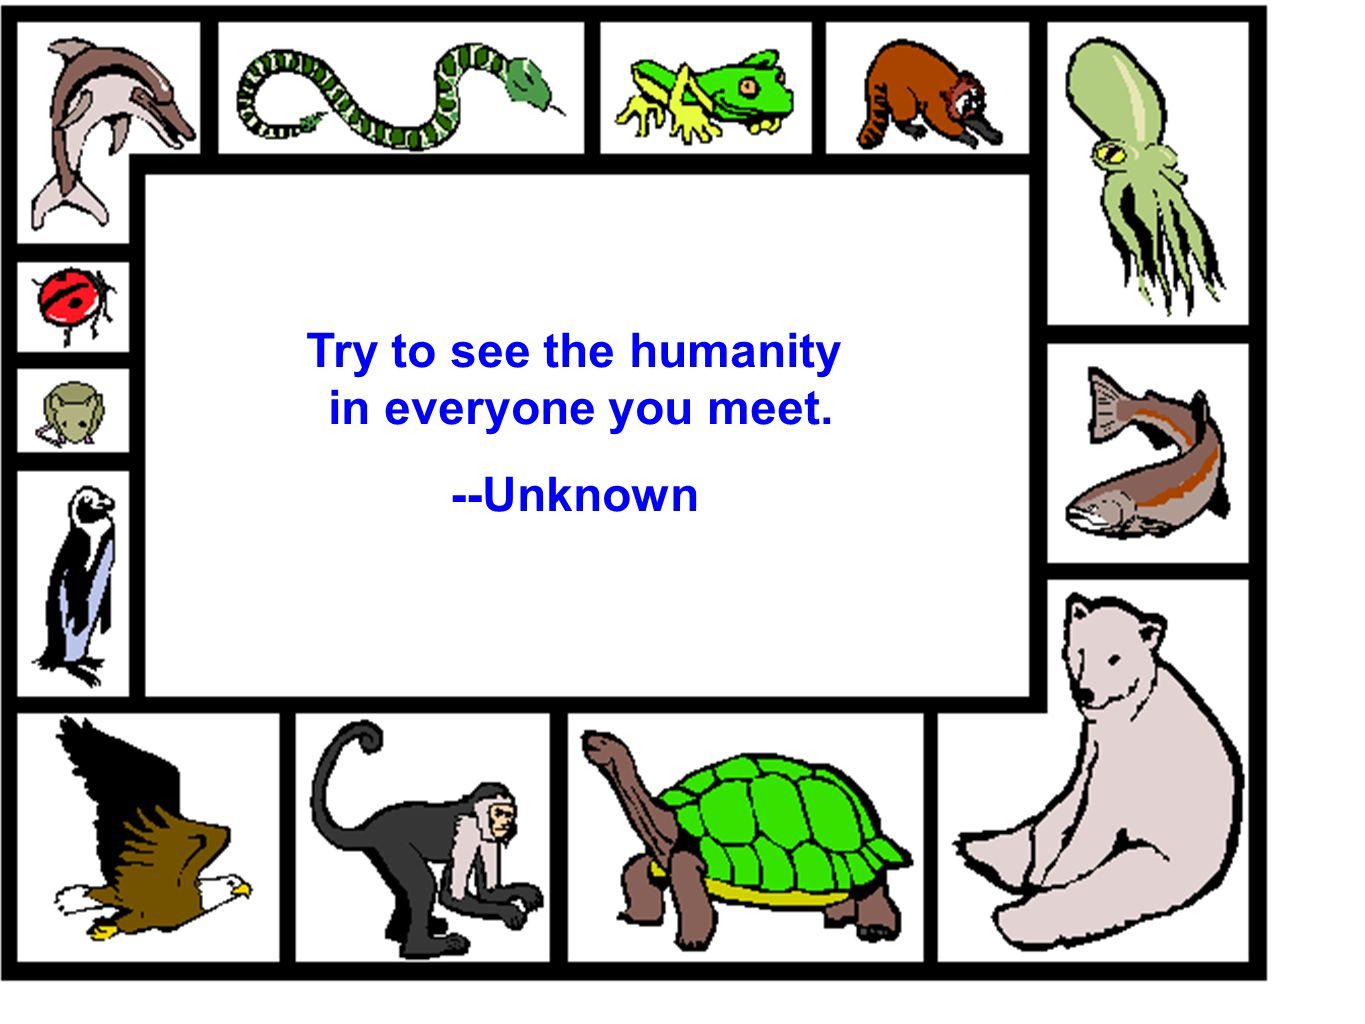 Try to see the humanity in everyone you meet. --Unknown